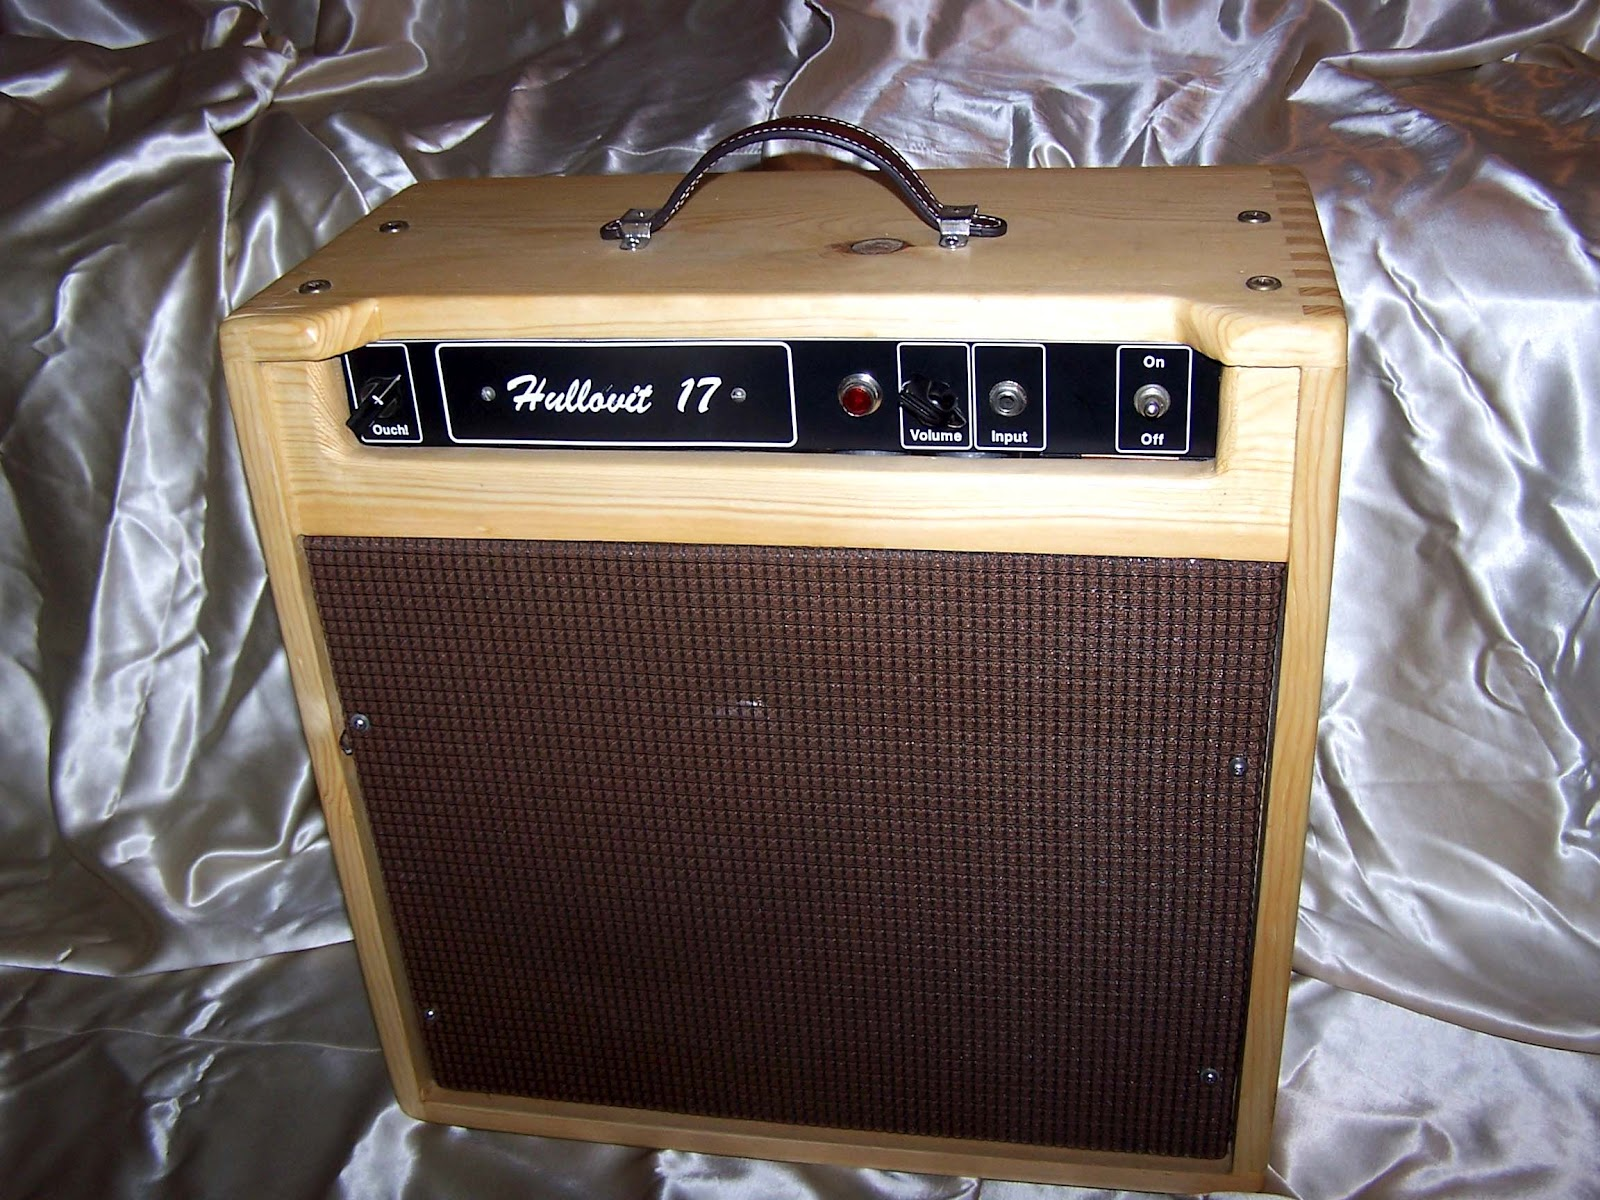 hull amps custom tube guitar amps. Black Bedroom Furniture Sets. Home Design Ideas